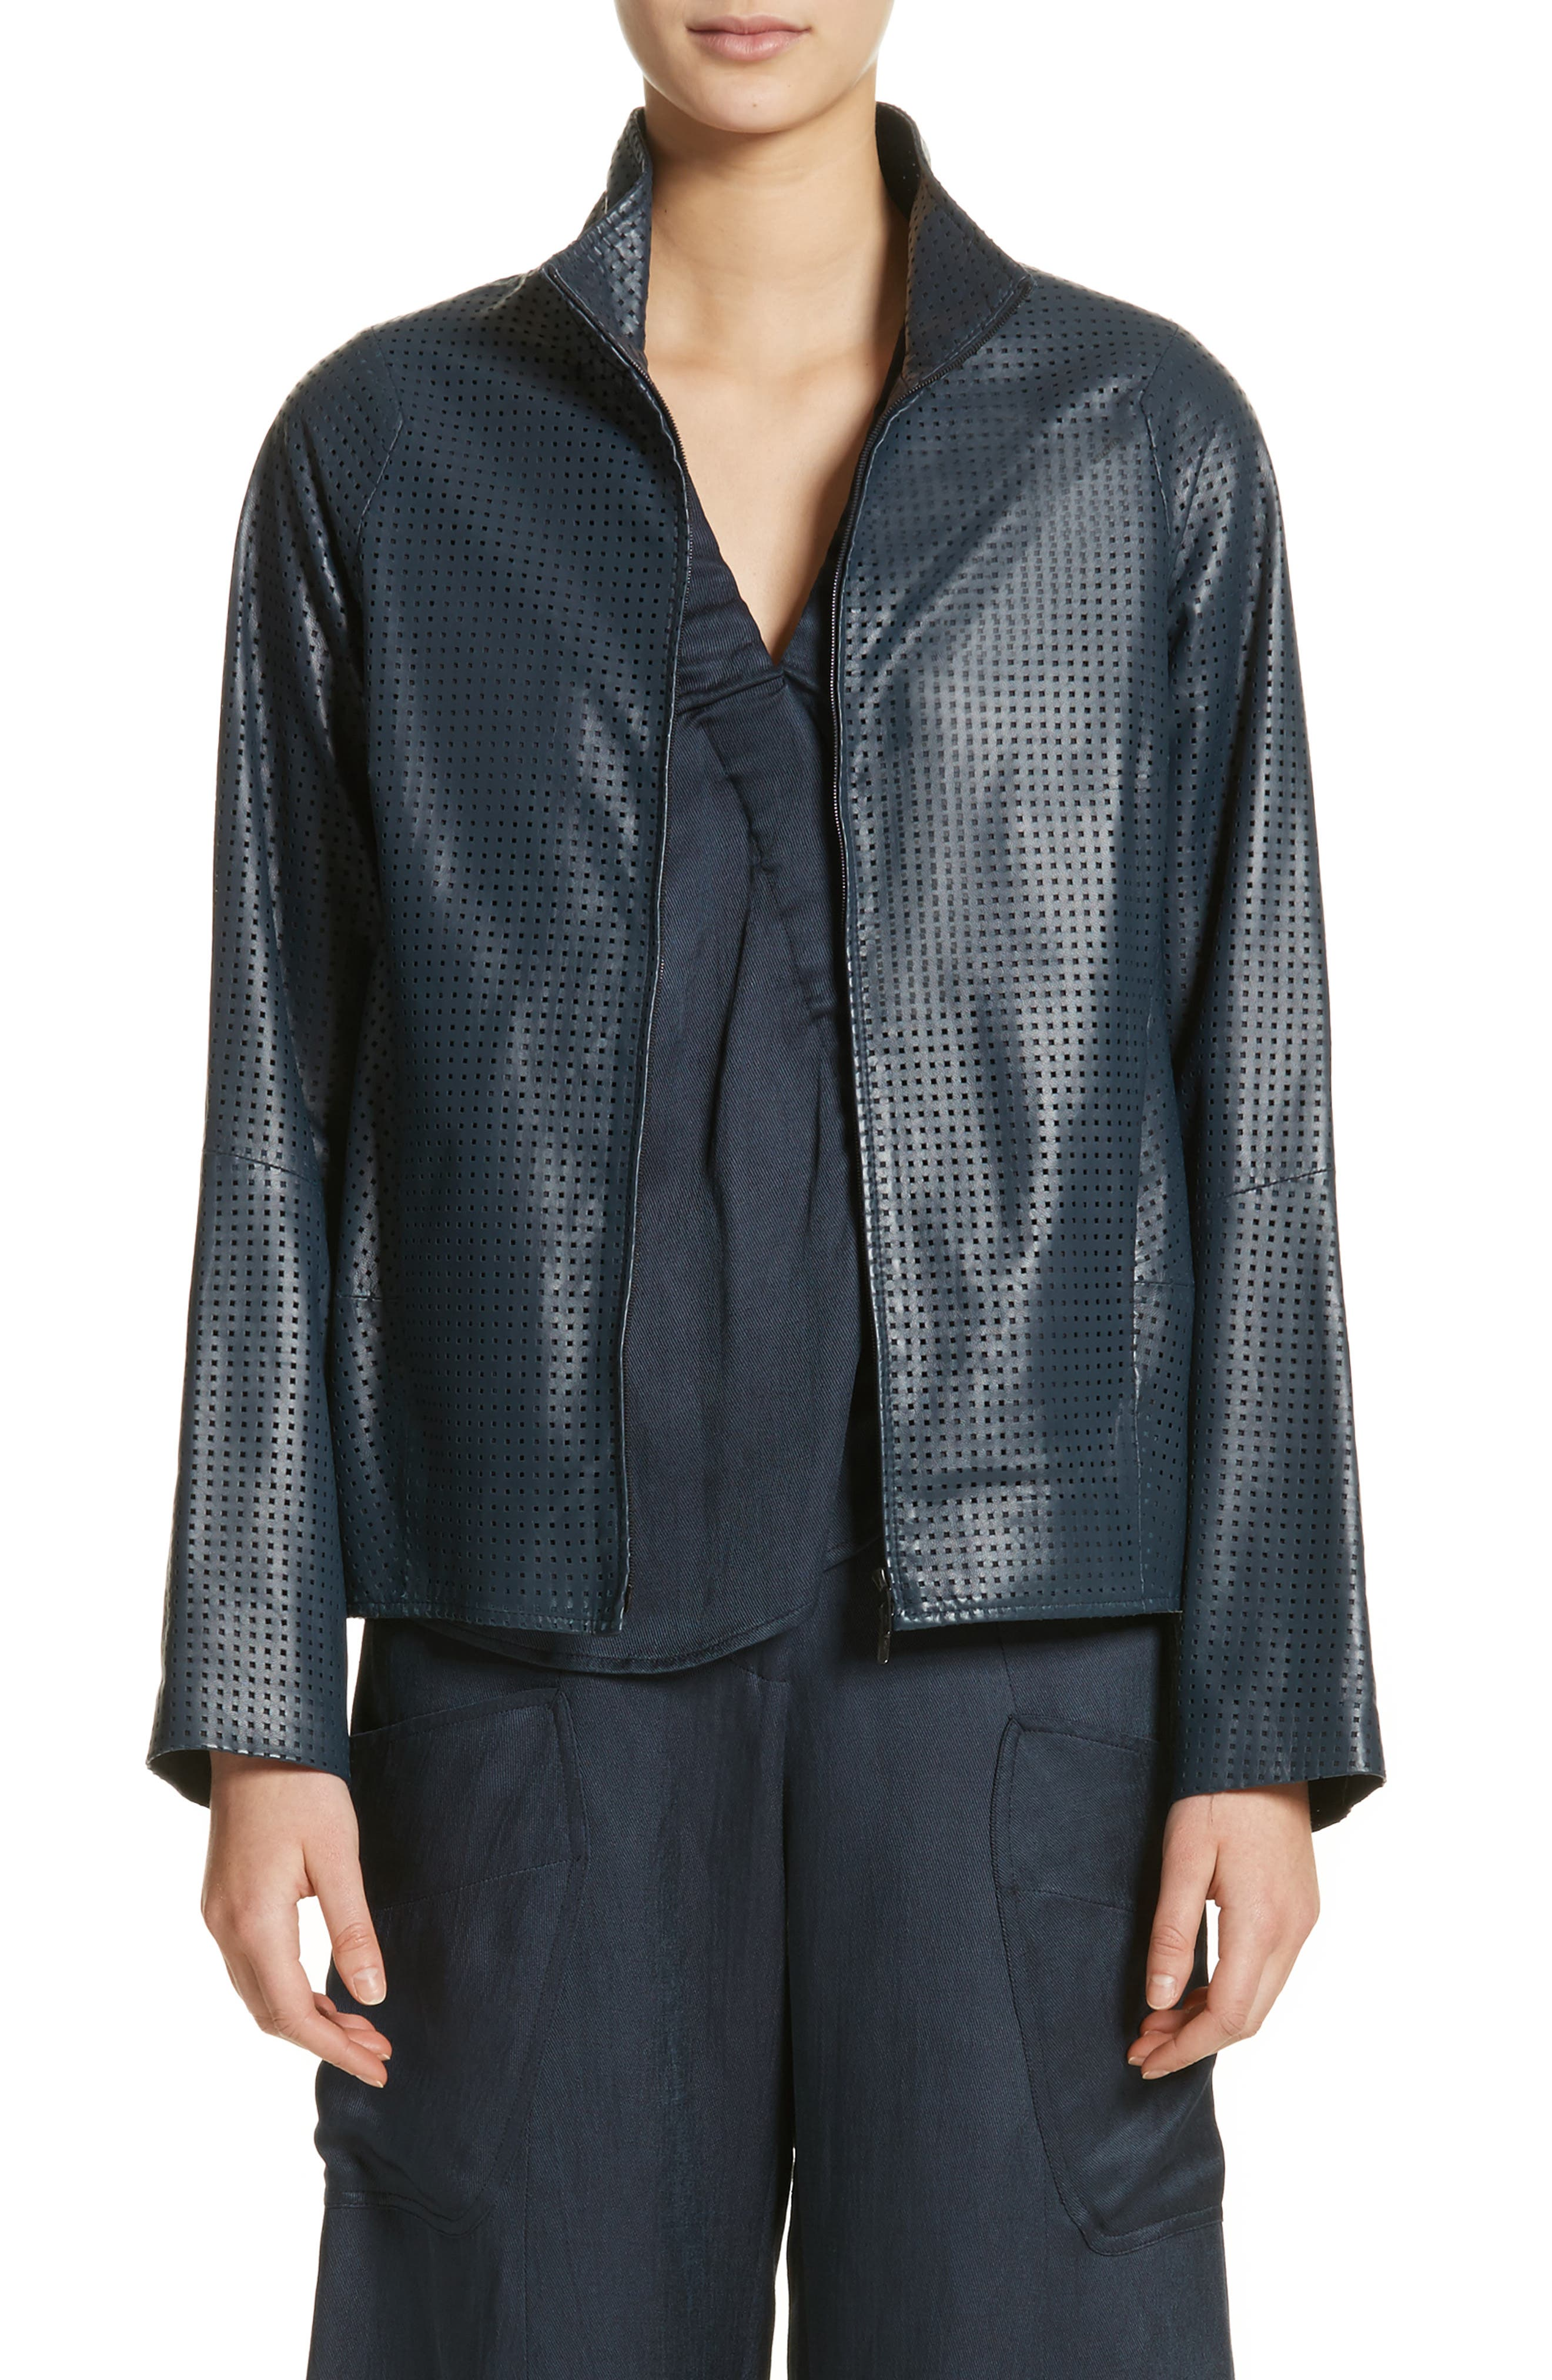 Perforated Nappa Leather Jacket,                             Main thumbnail 1, color,                             400